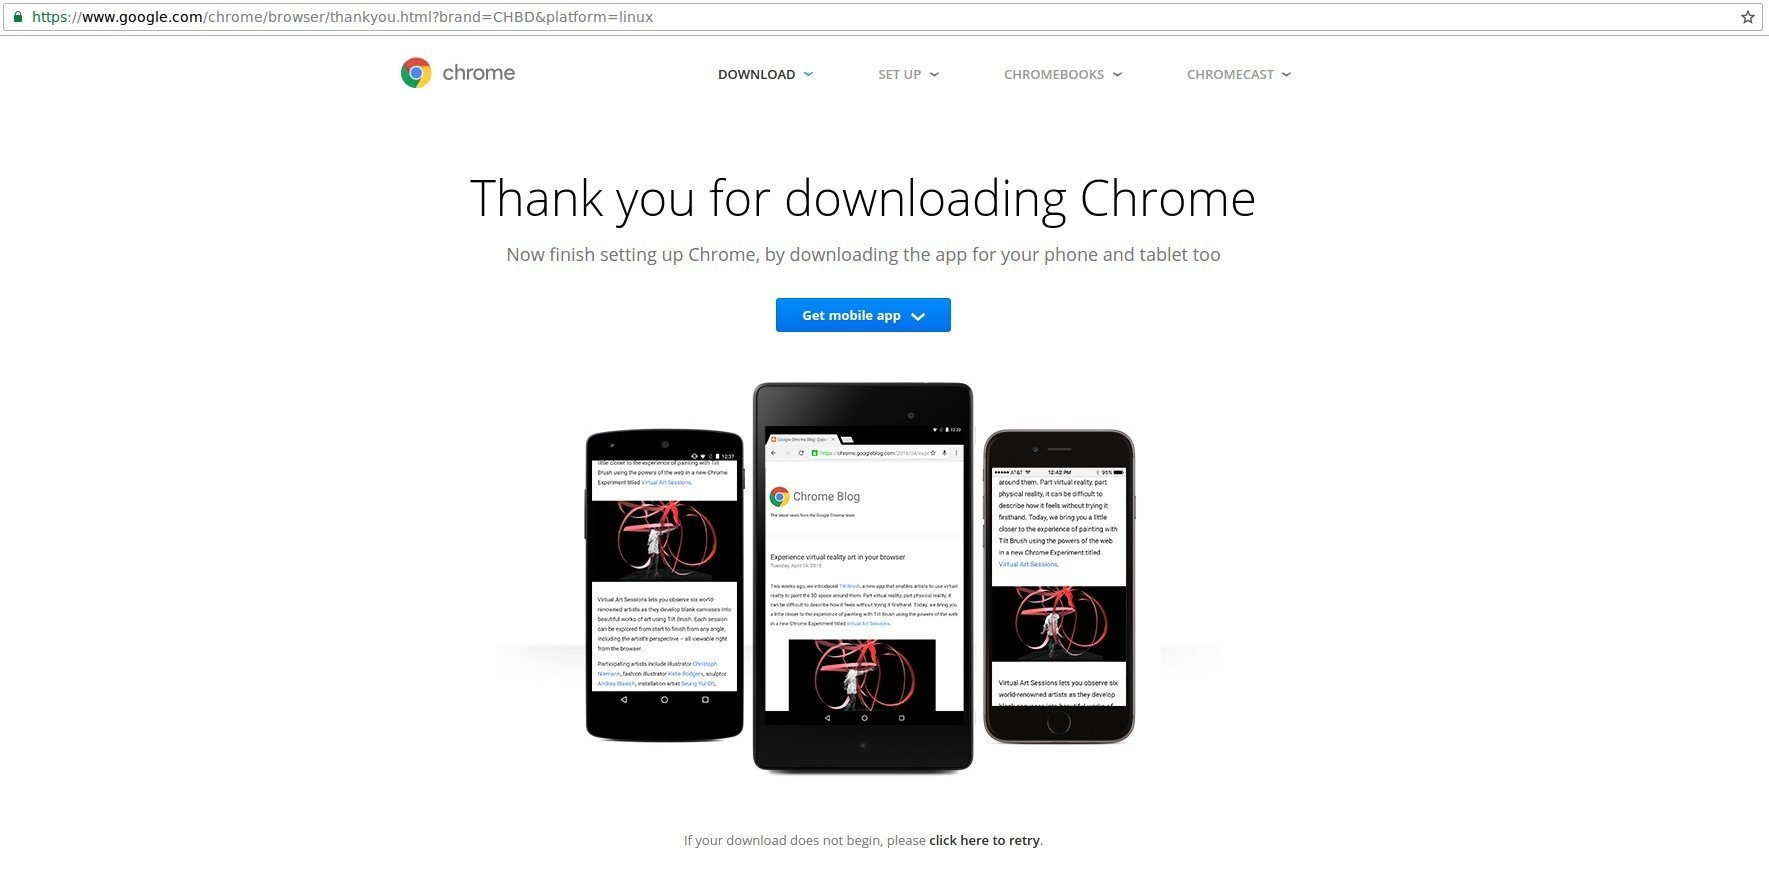 Chrome Offline Installer for PC, Mac, Android + Linux | KFire TV